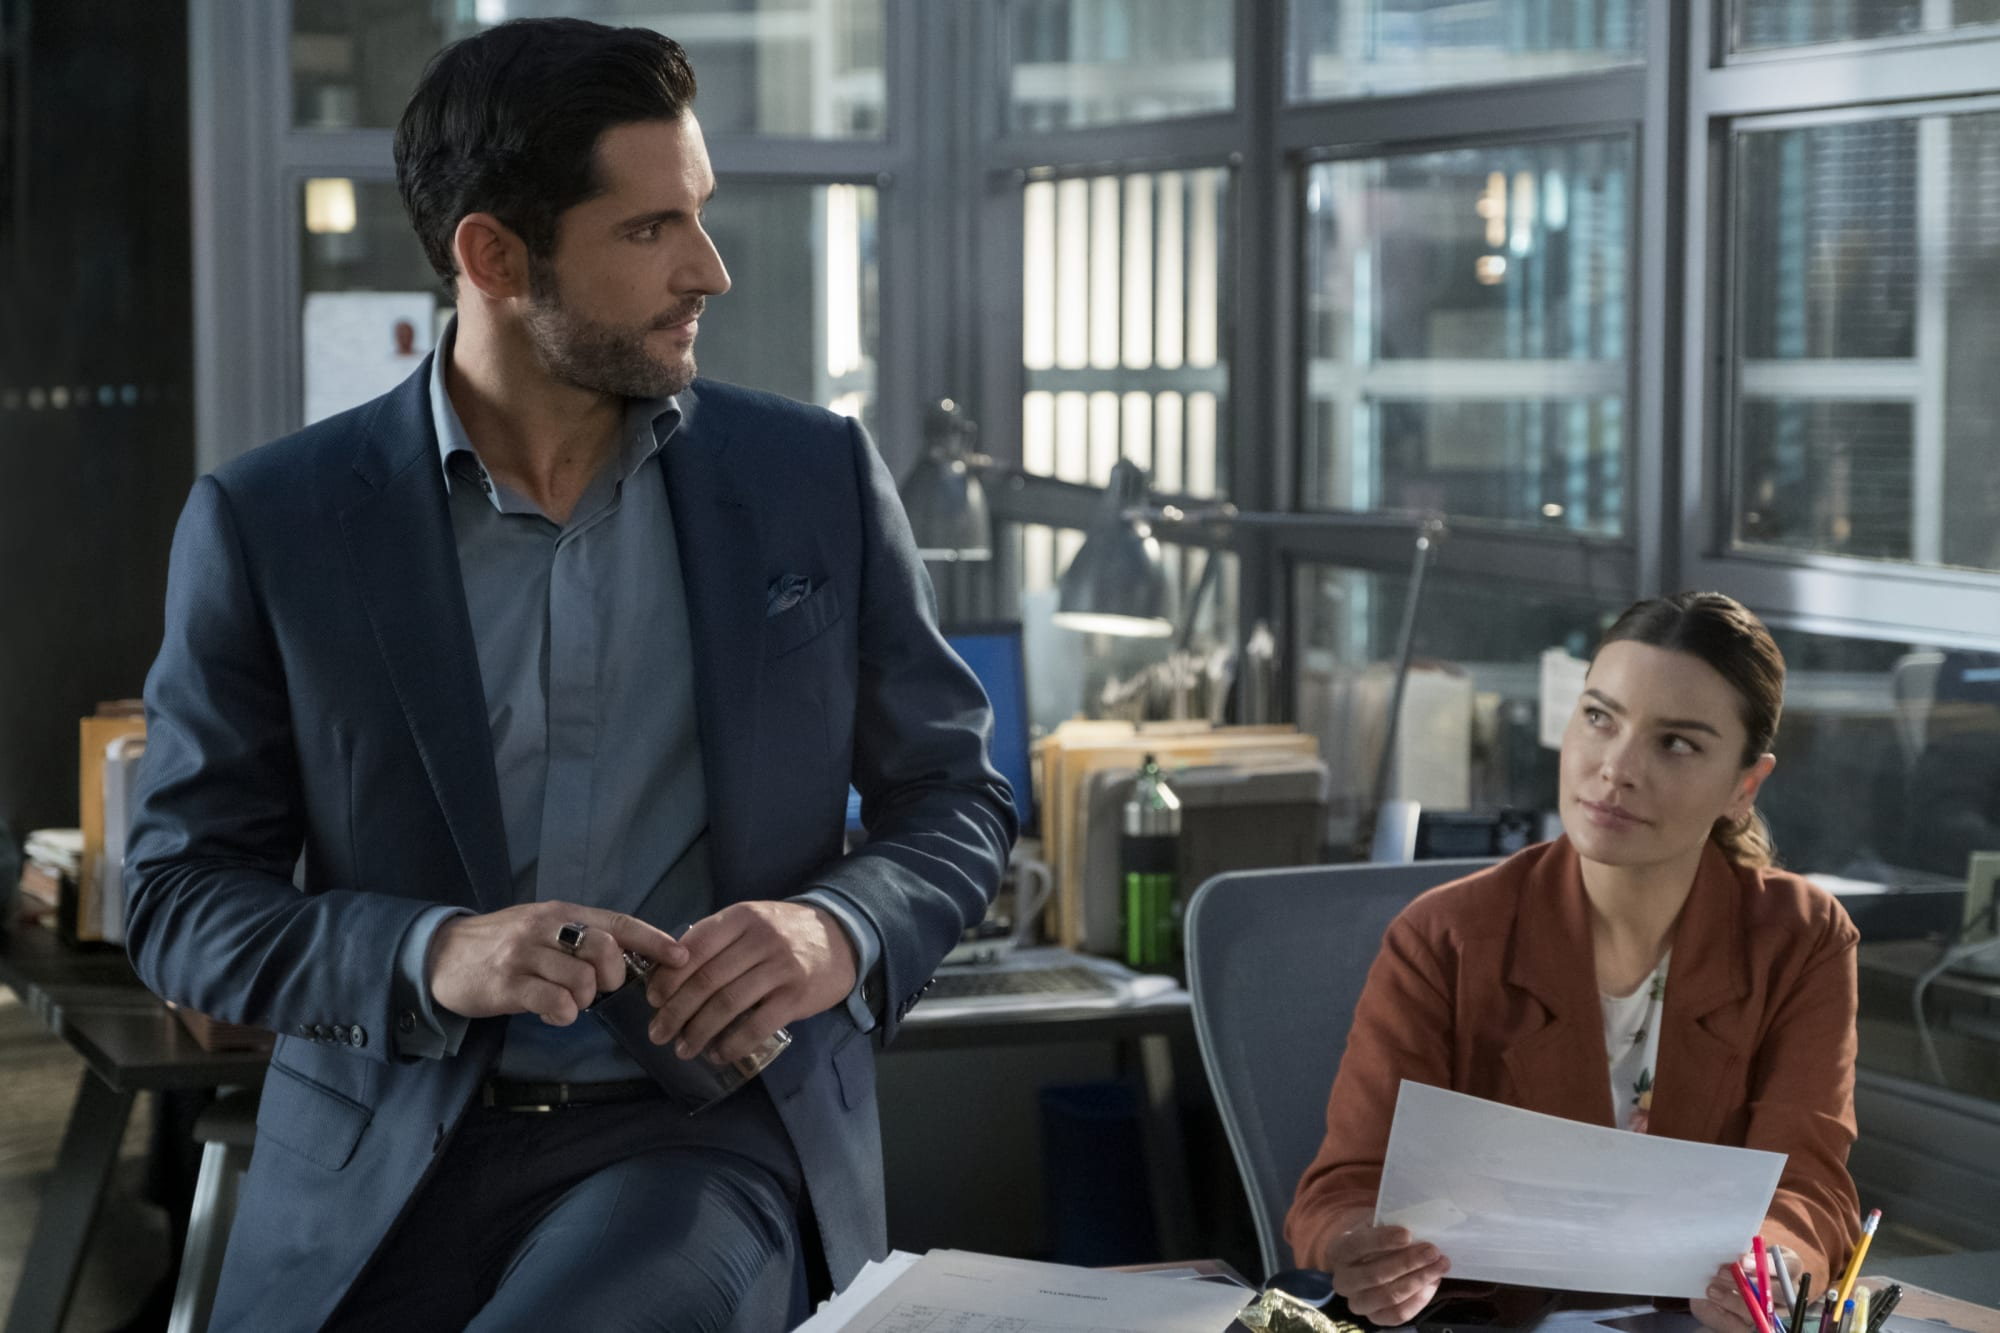 Heaven and hell: Supernatural star to guest in Lucifer season 5